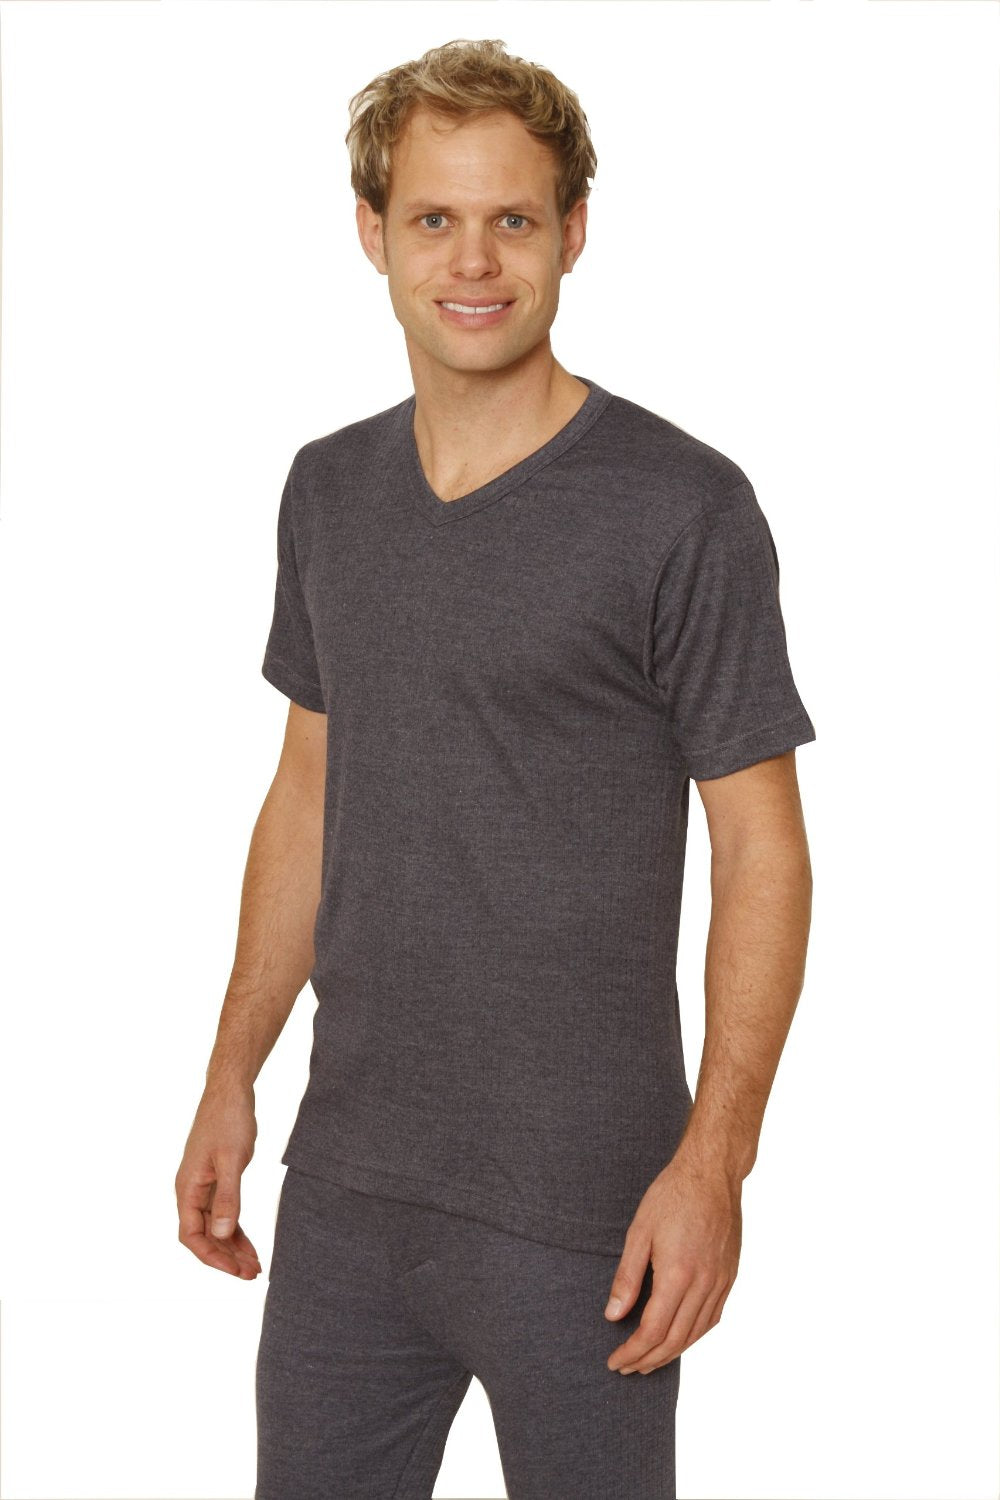 Octave® Mens Thermal Underwear Short-Sleeve V-Neck Top